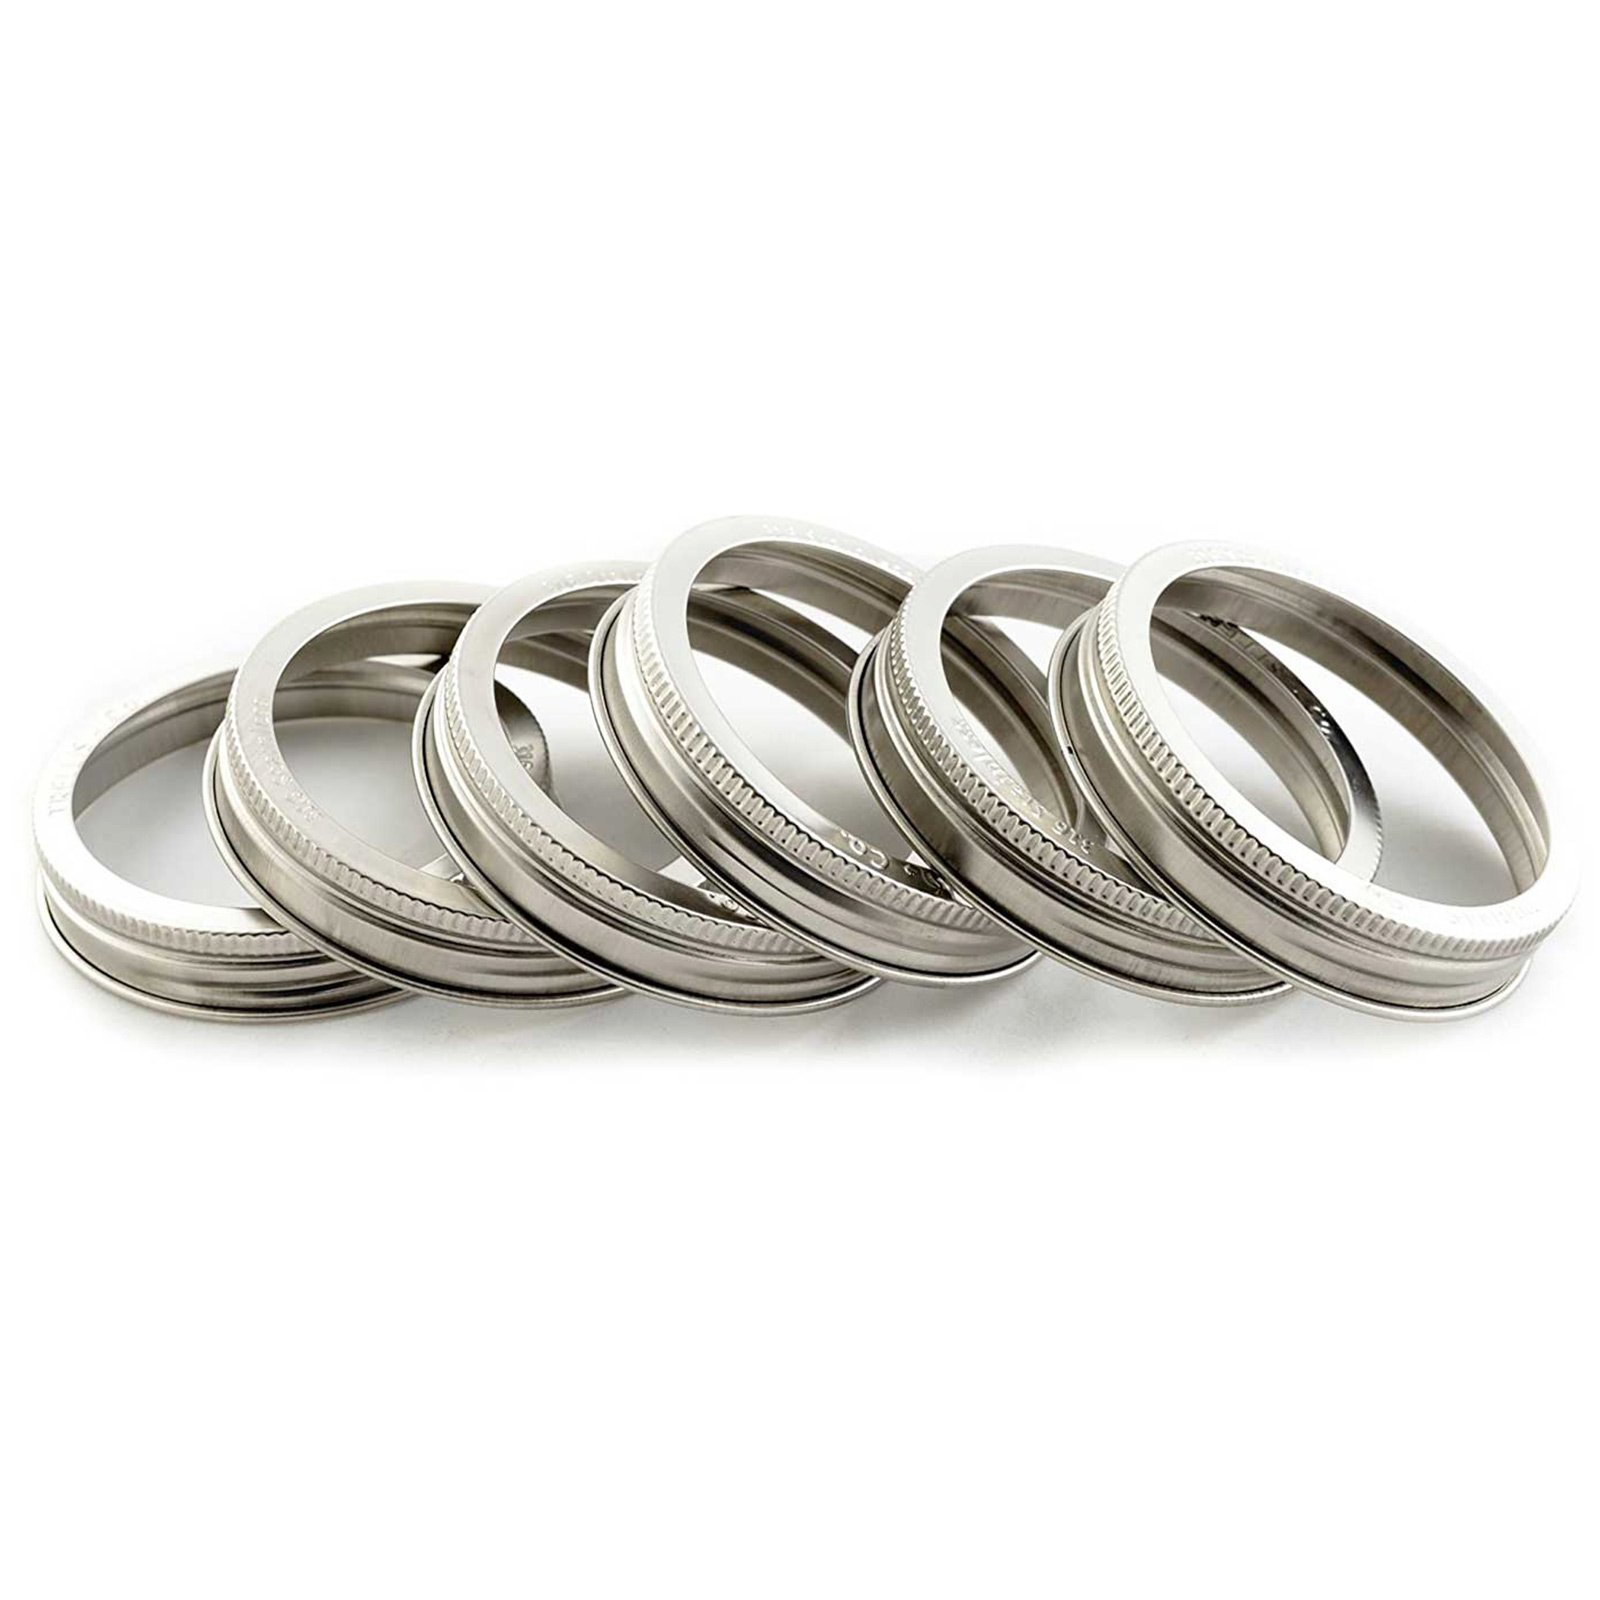 T&Co. STAMPED Stainless Steel Wide Mouth Mason Jar Replacement Rings/Bands/Tops - Durable & Rustproof - Set of 6 - For Pickling, Canning, Storage